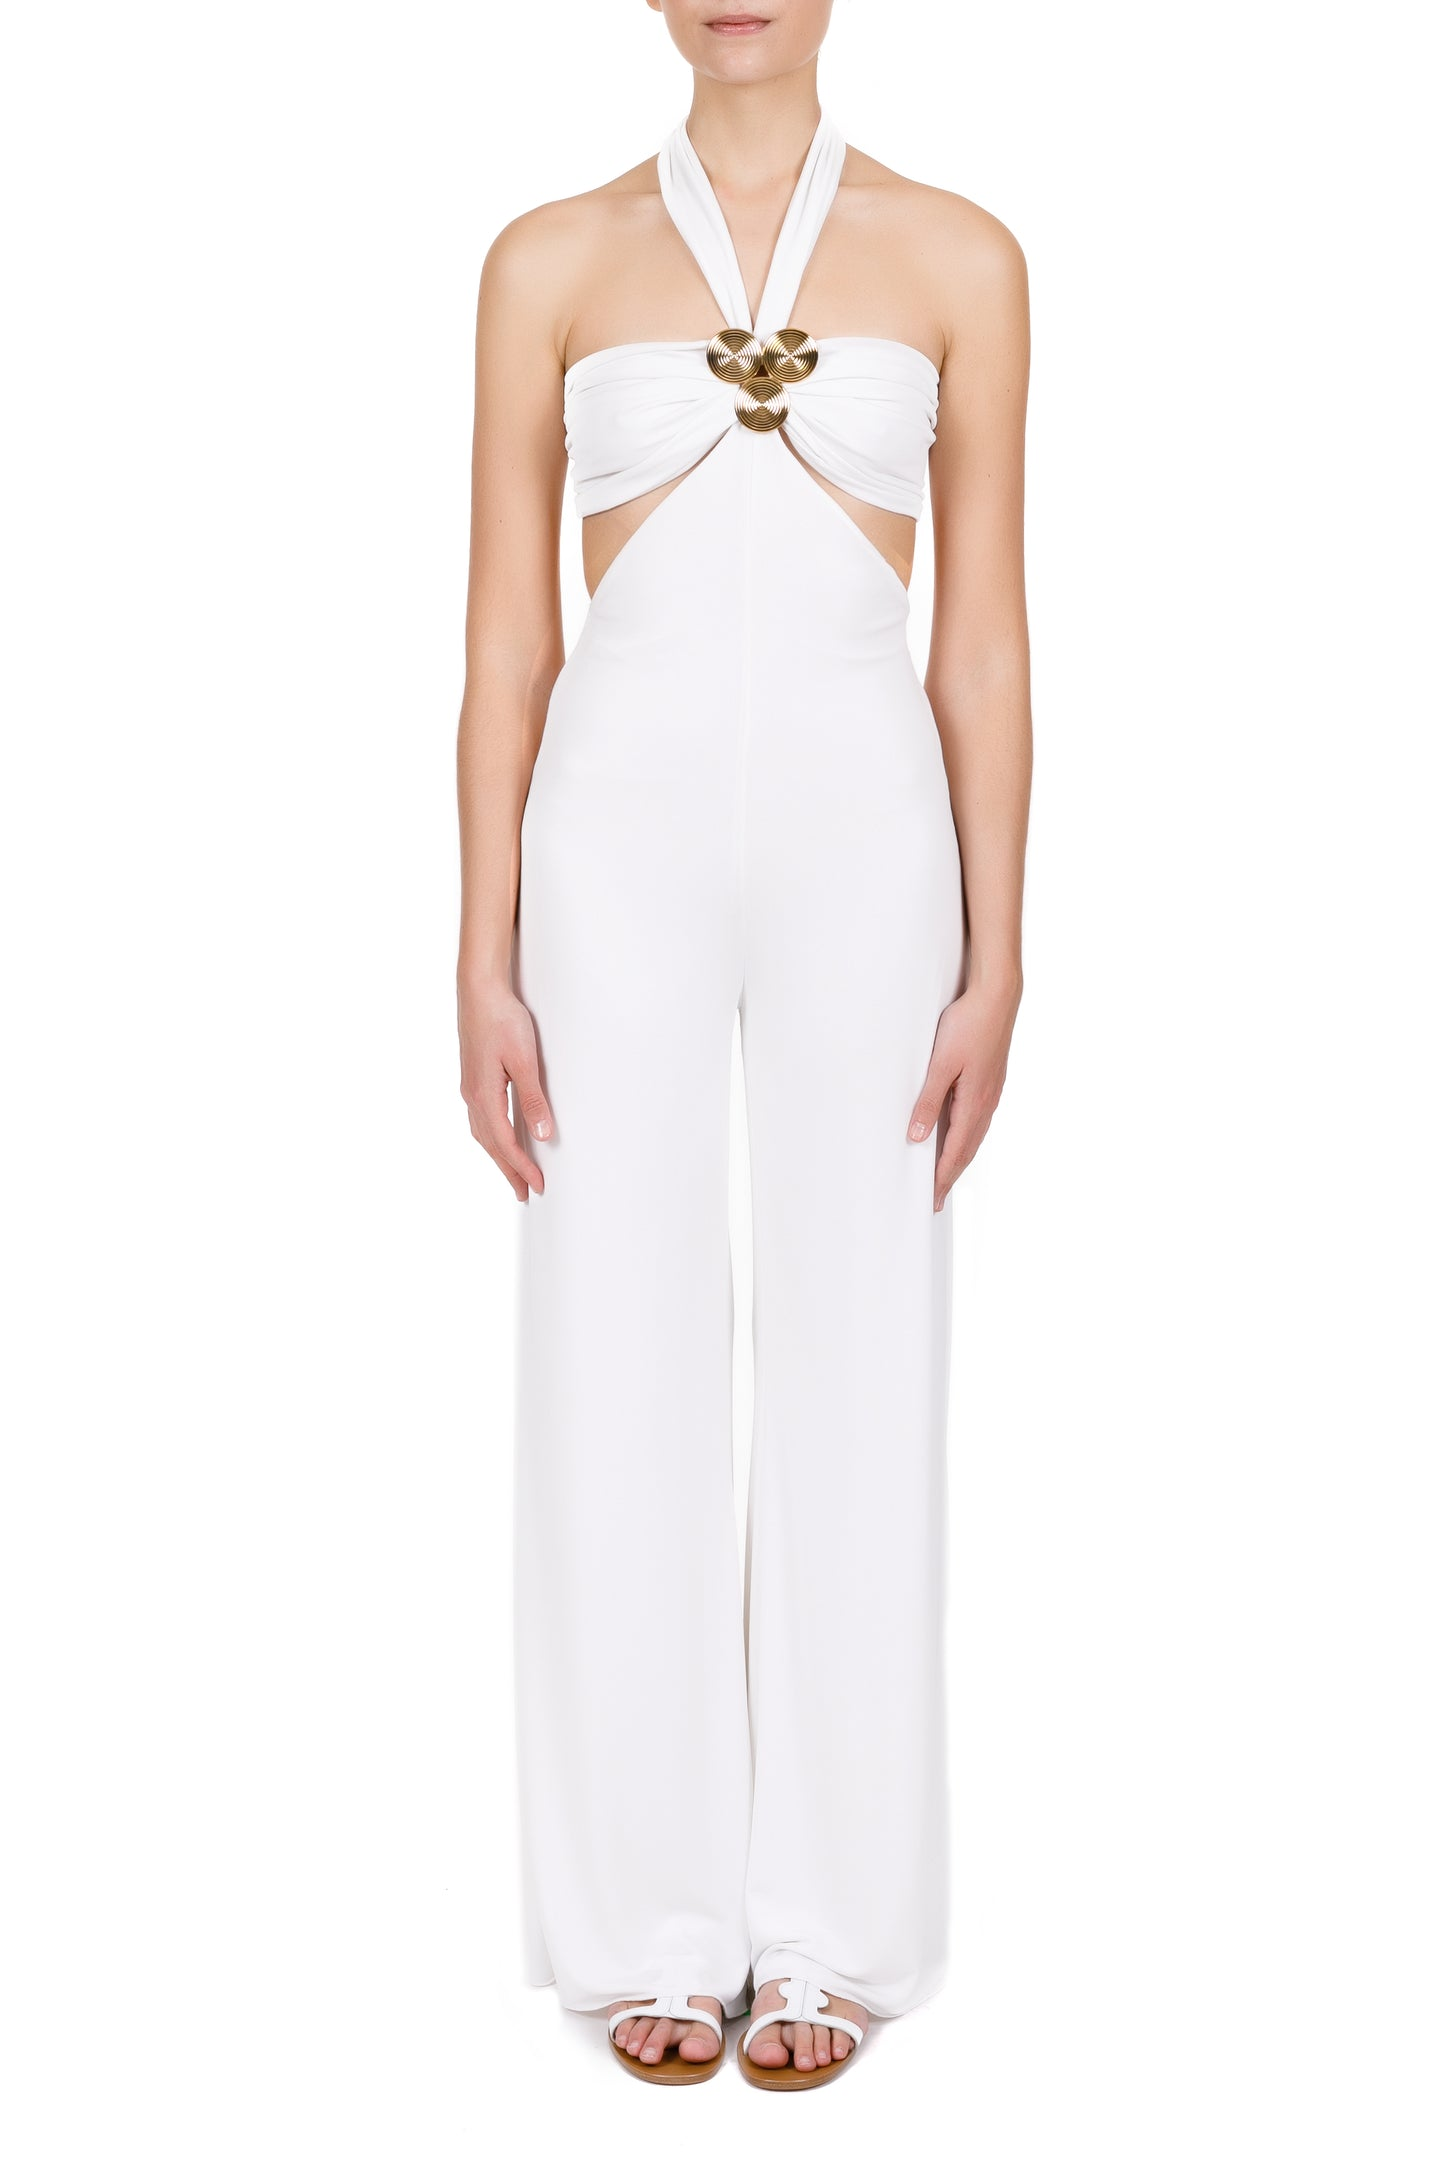 Koronis white pantsuit